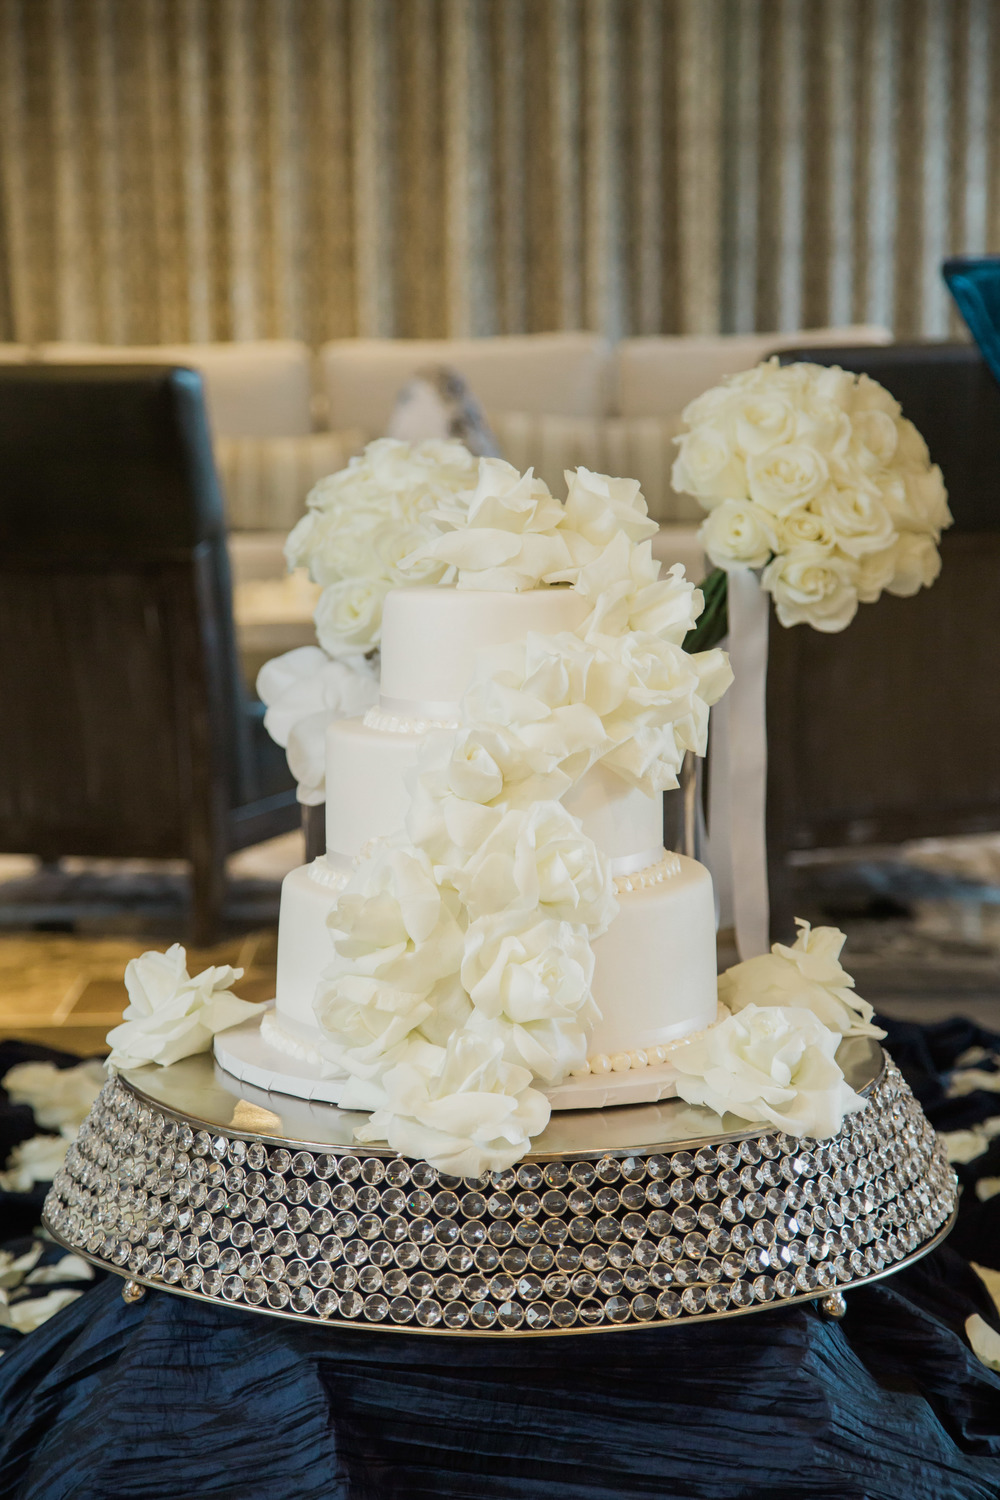 White on white wedding cake by Caesars Palace .   Vendor Credits:    Wedding in the   Nobu Villa    |    Las Vegas Wedding Planner   Andrea Eppolito     |    Photography by   Adam Frazier    |    Videography by   Pure Light Creative    |    Floral and Decor by   Destinations by Design    |  Lighting by LED Unplugged  |    Music by   DJ Mike Fox